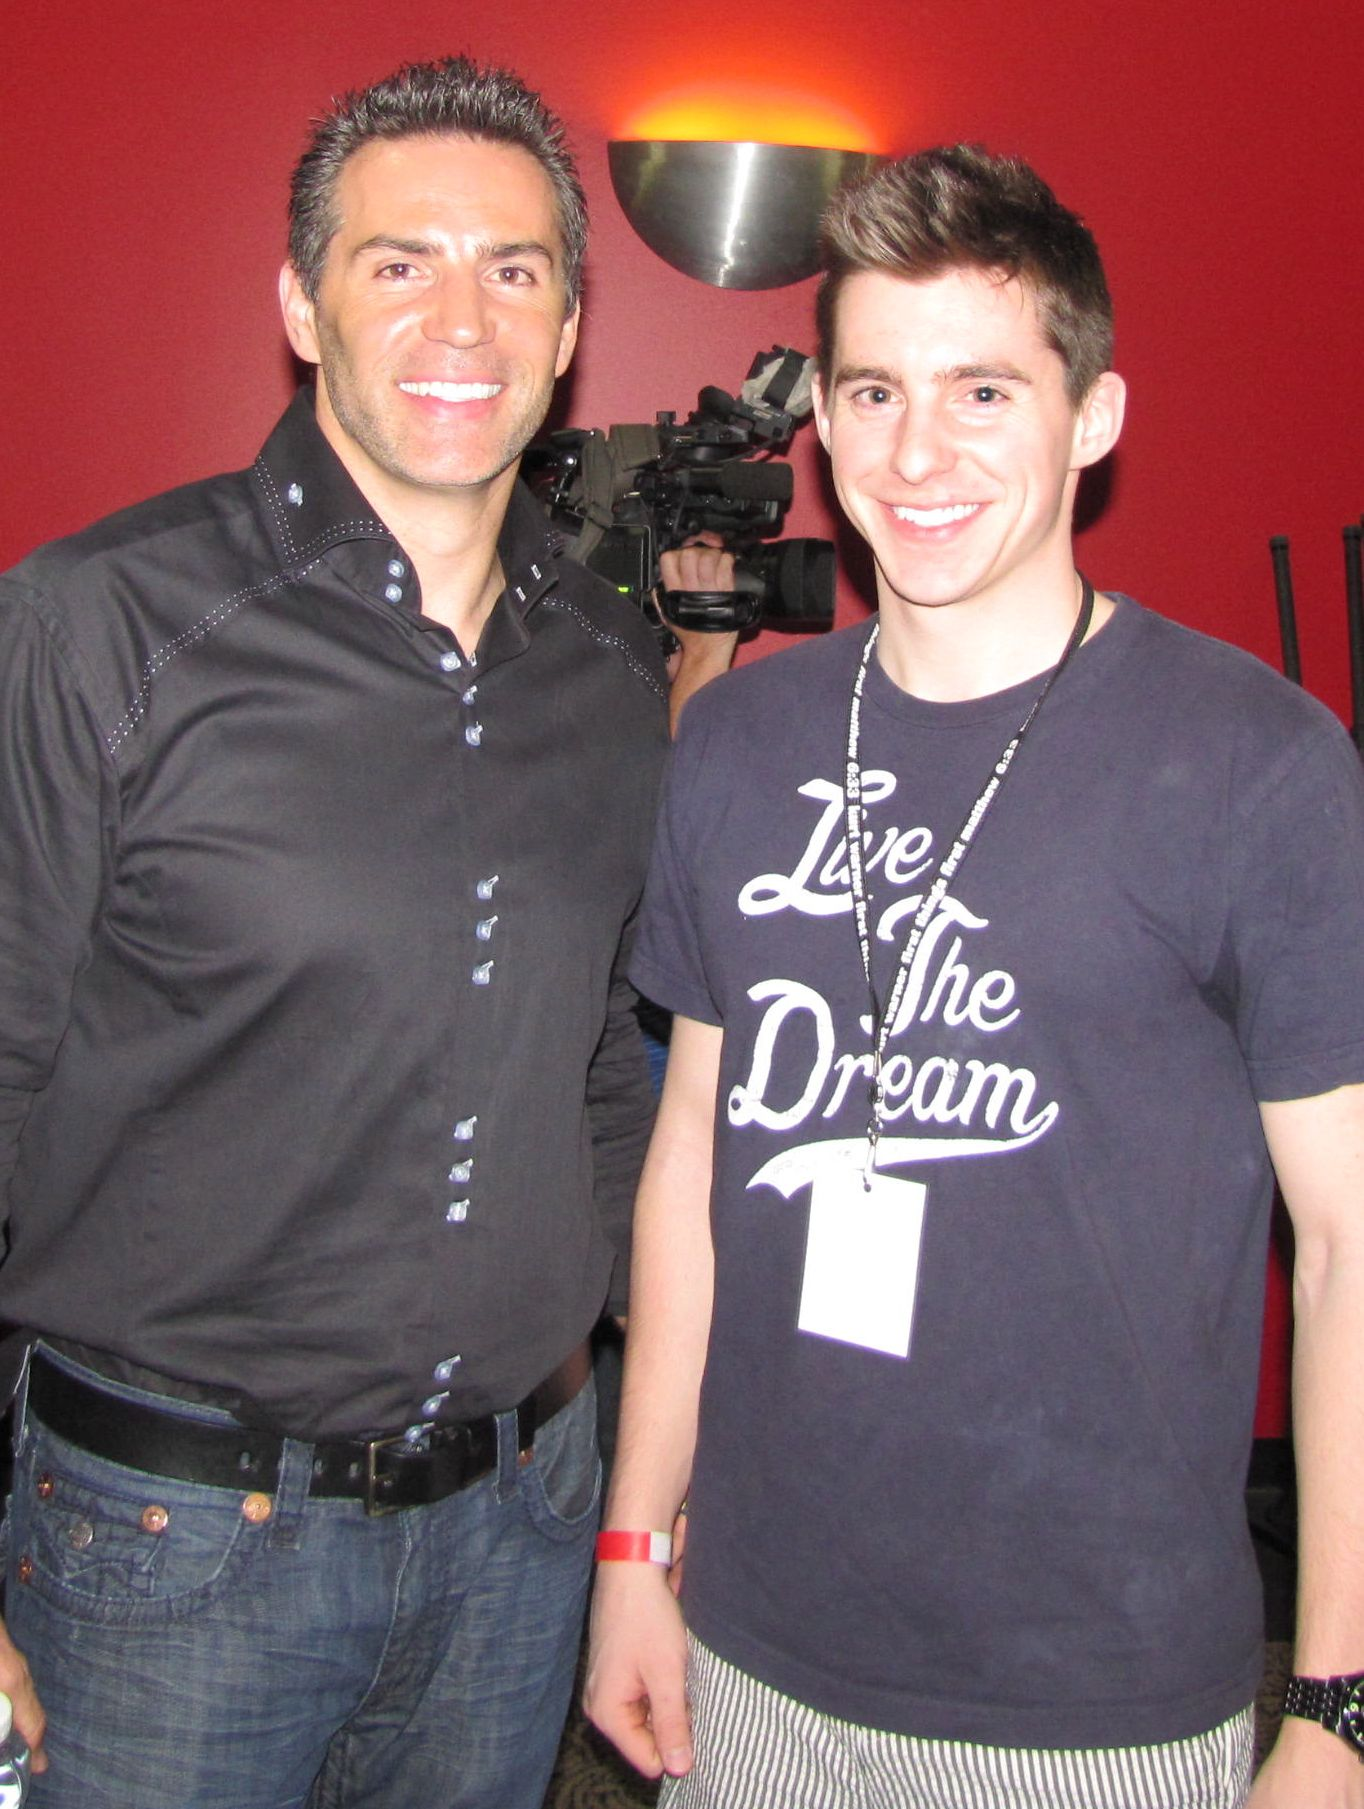 I won a contest, thru Facebook, for a Nutrilite sweepstakes to go play flag-football with Nutrilite spokesman Kurt Warner. Got to meet him and shake his hand.